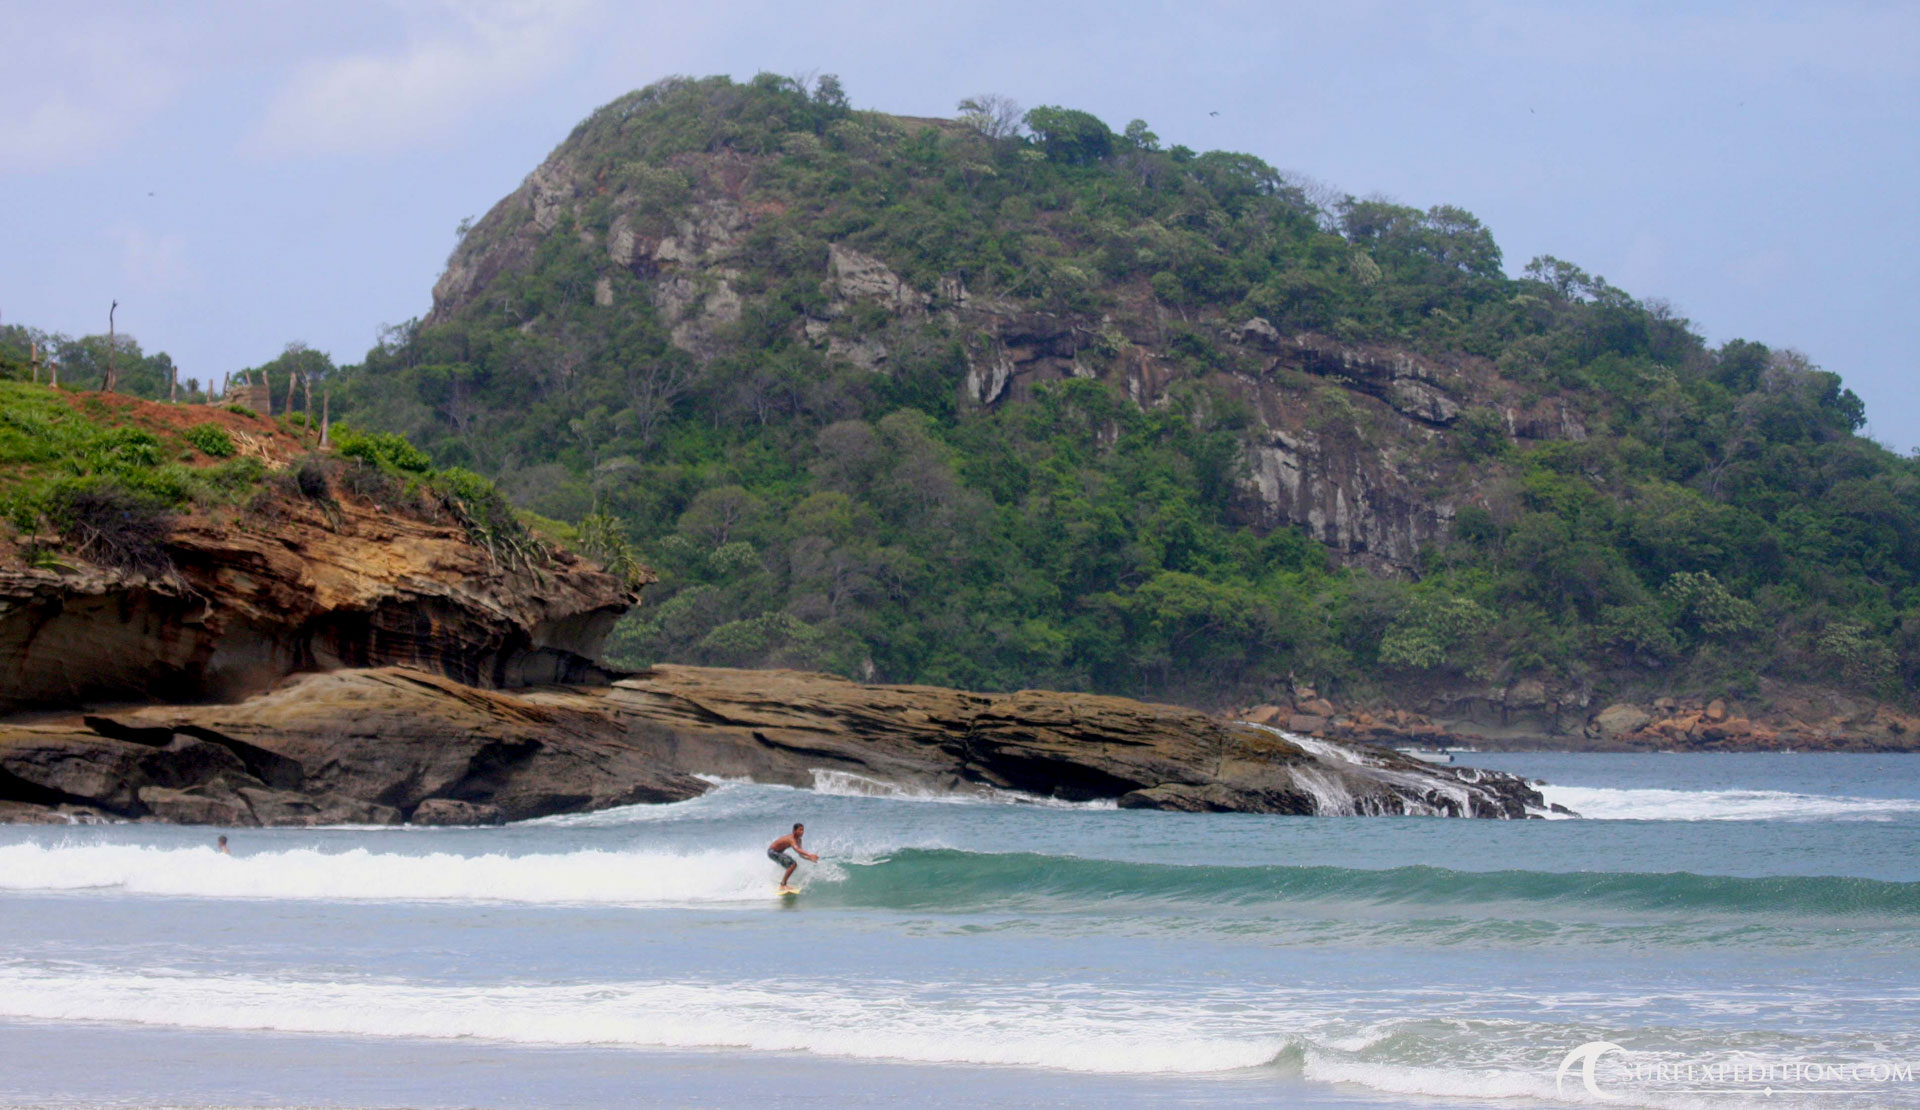 surf-expedition-surf-camp-surf-trip